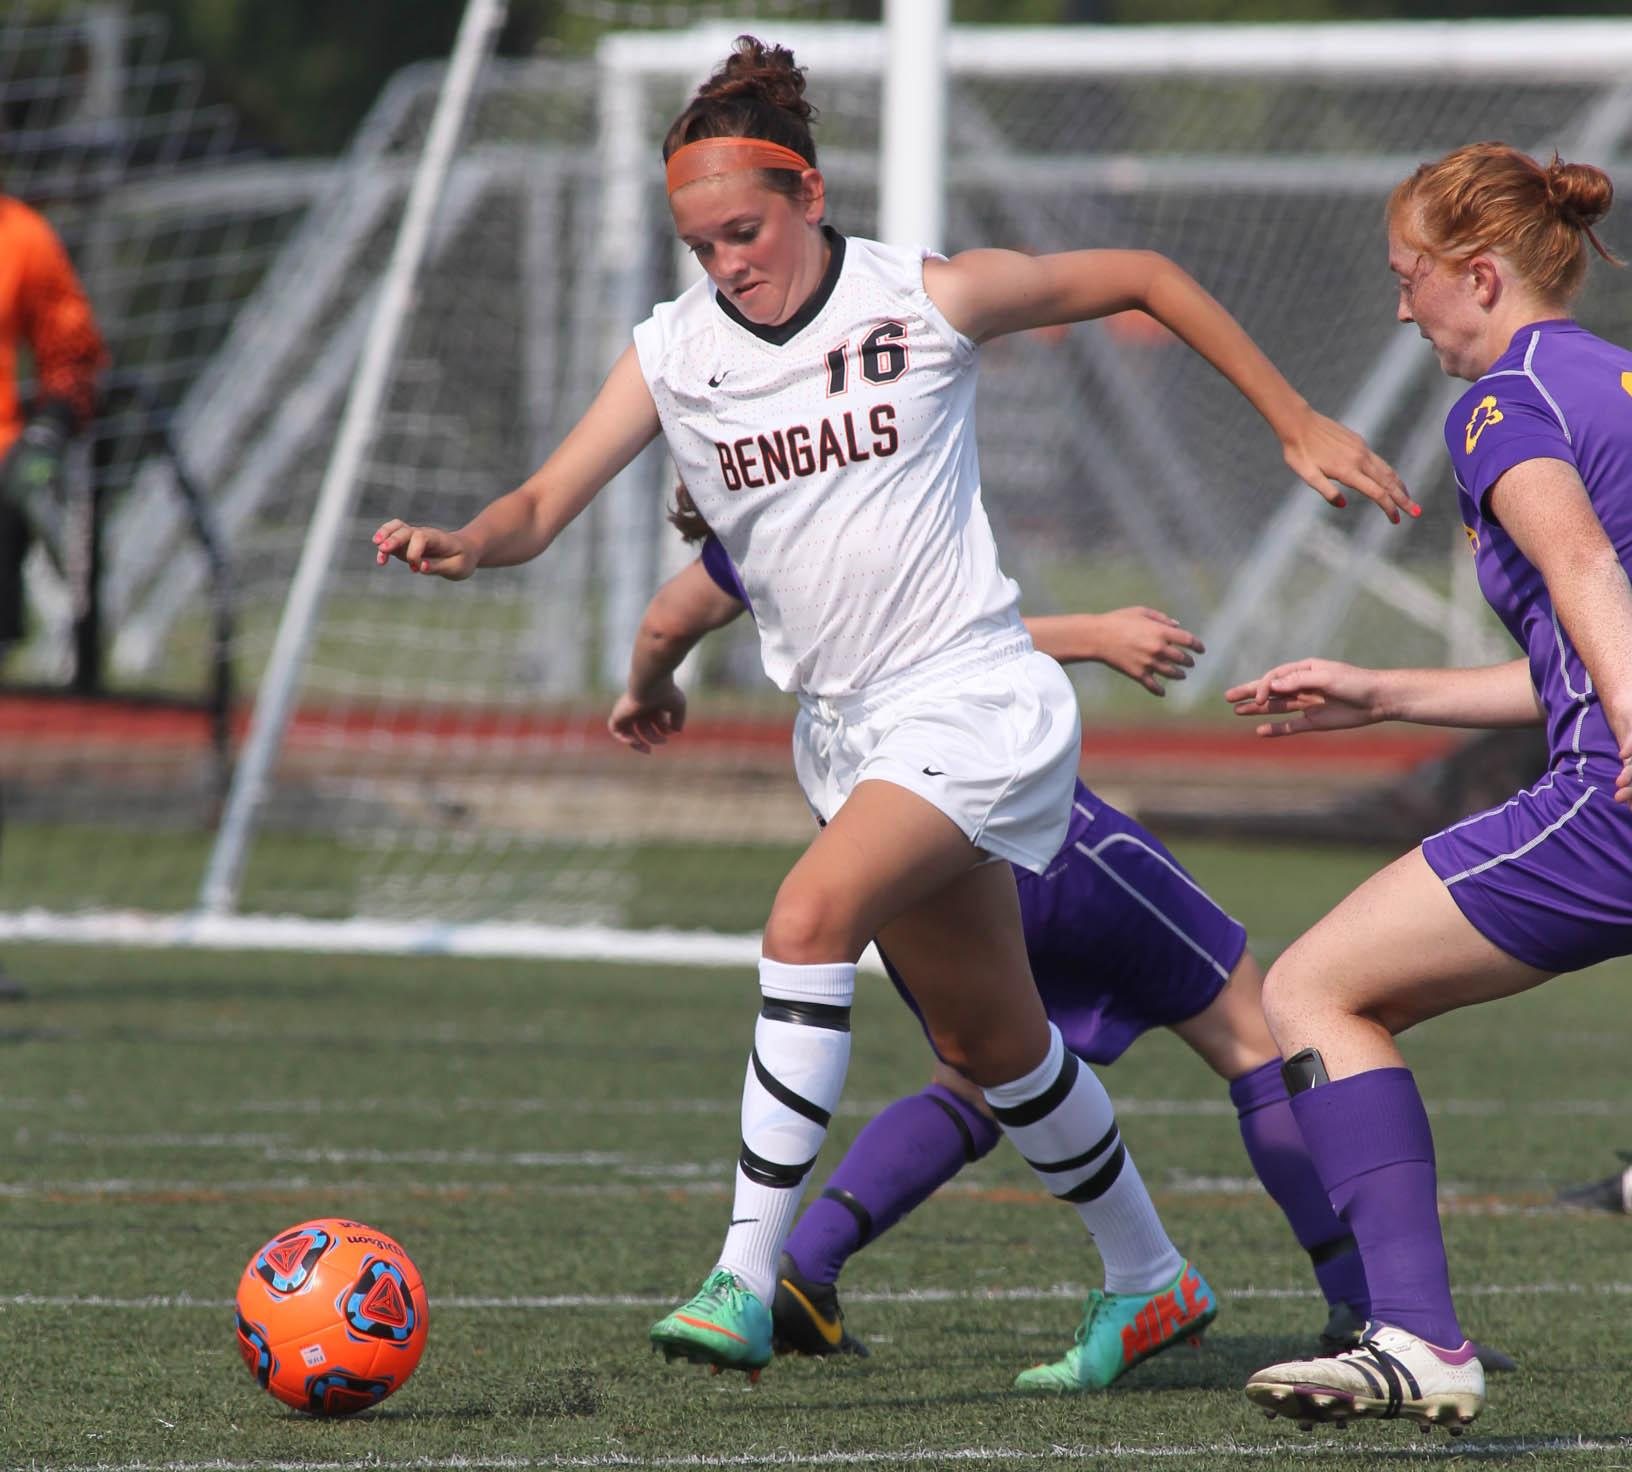 Senior forward melissaSmith scored theory goal in Saturday's draw with Union College.